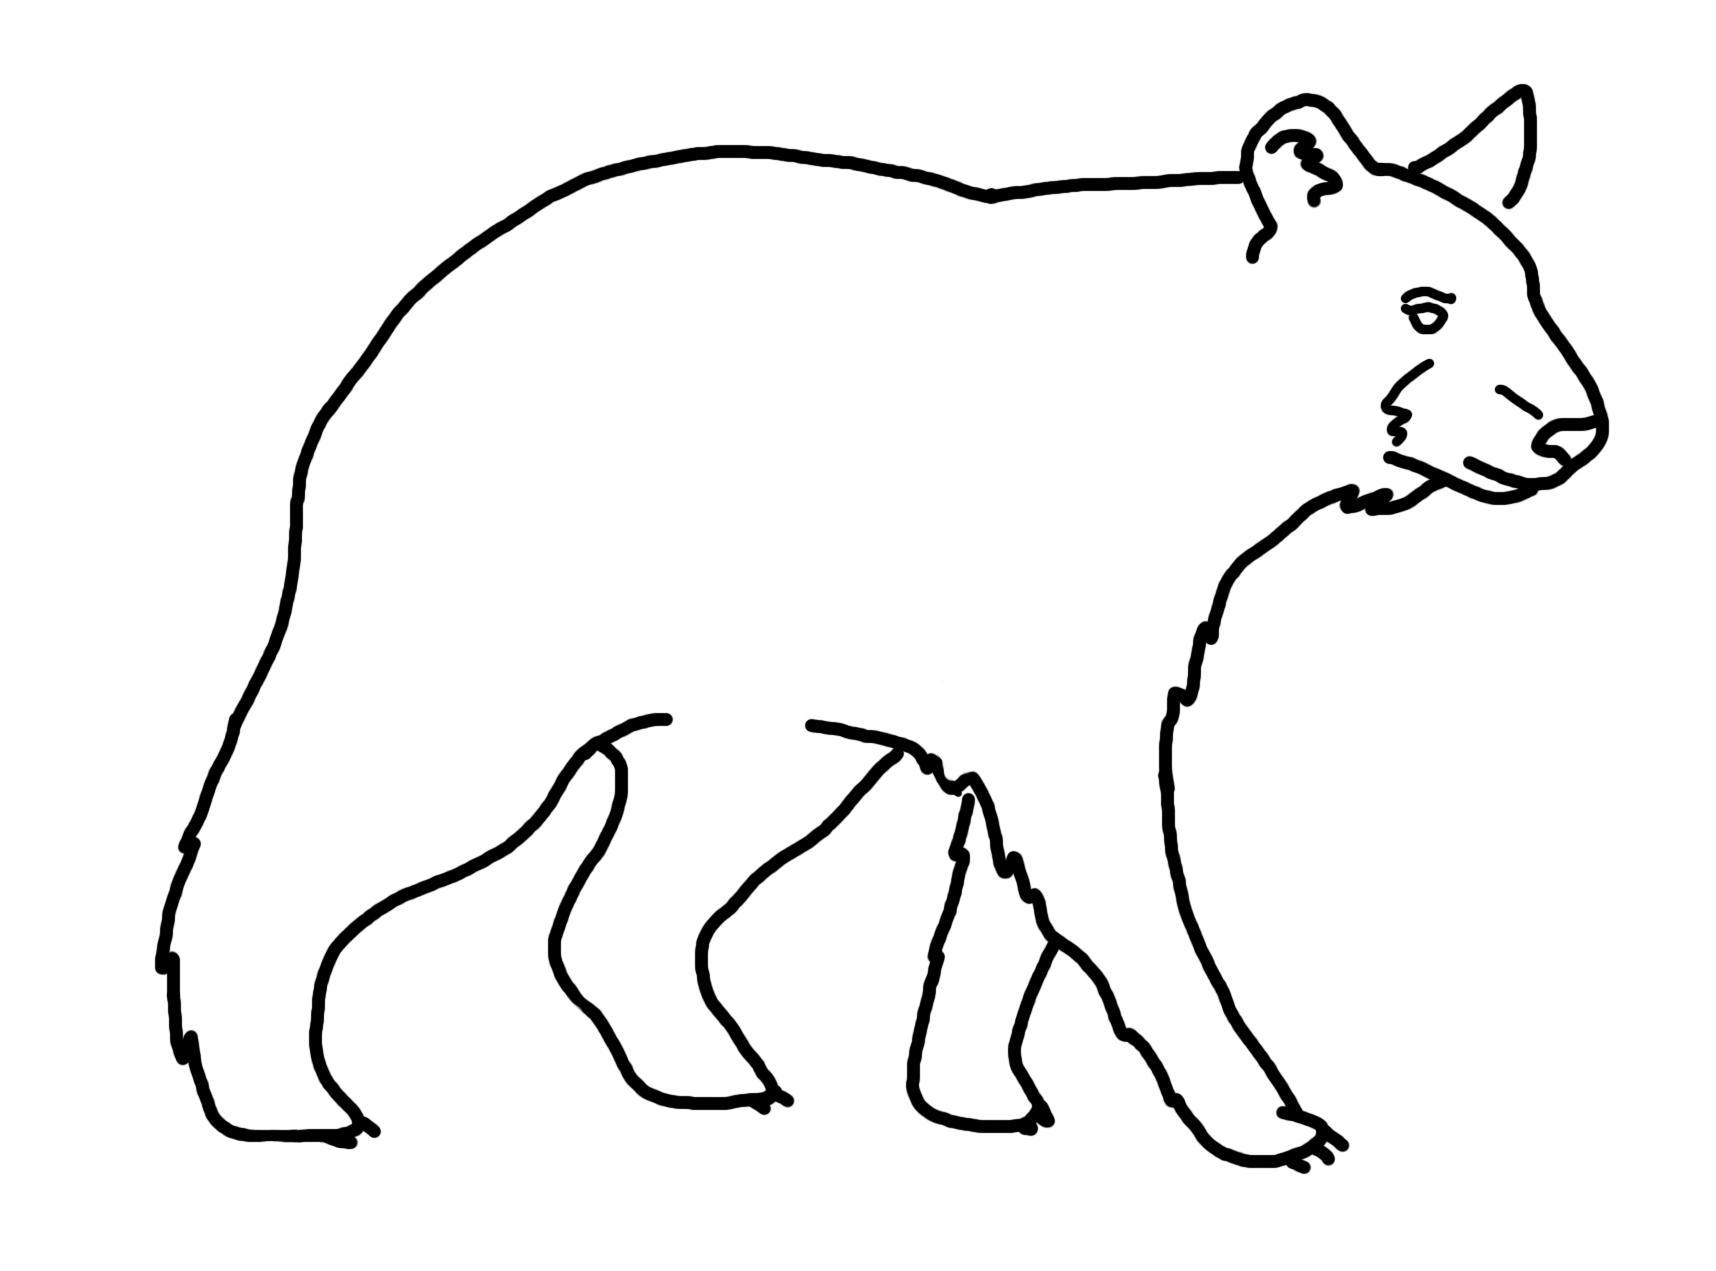 29 Bear Line Drawing   Free Cliparts That You Can Download To You